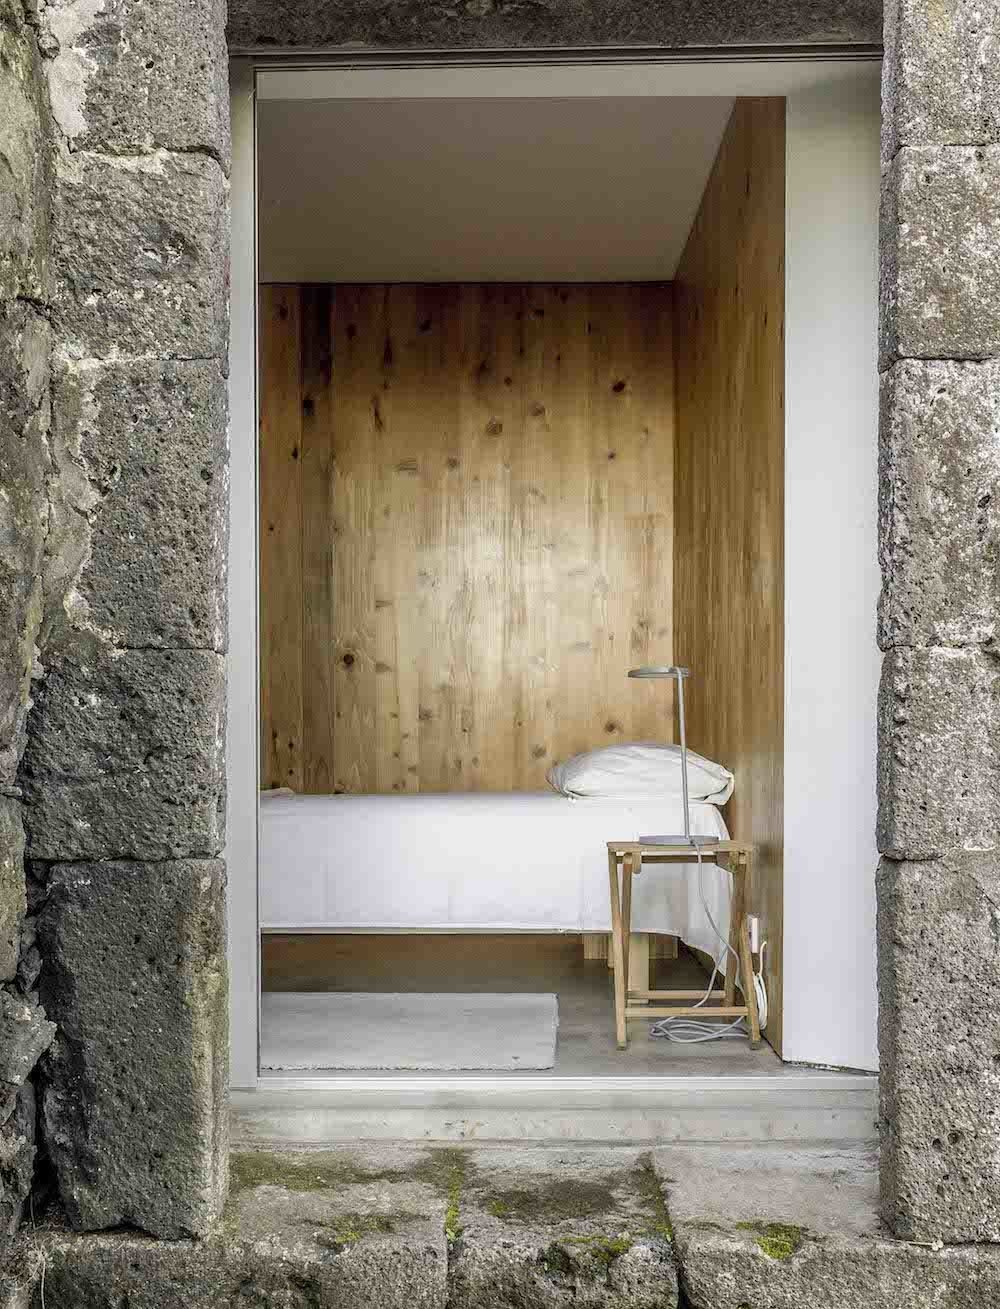 Warm wooden walls ensure the simple bedroom setup, a low mattress next to a Muuto Leaf table lamp, offers more comfort than the cold stone exterior.  Bedrooms by Dwell from This Modern Coastal Escape Sits Within 18th-Century Stone Walls